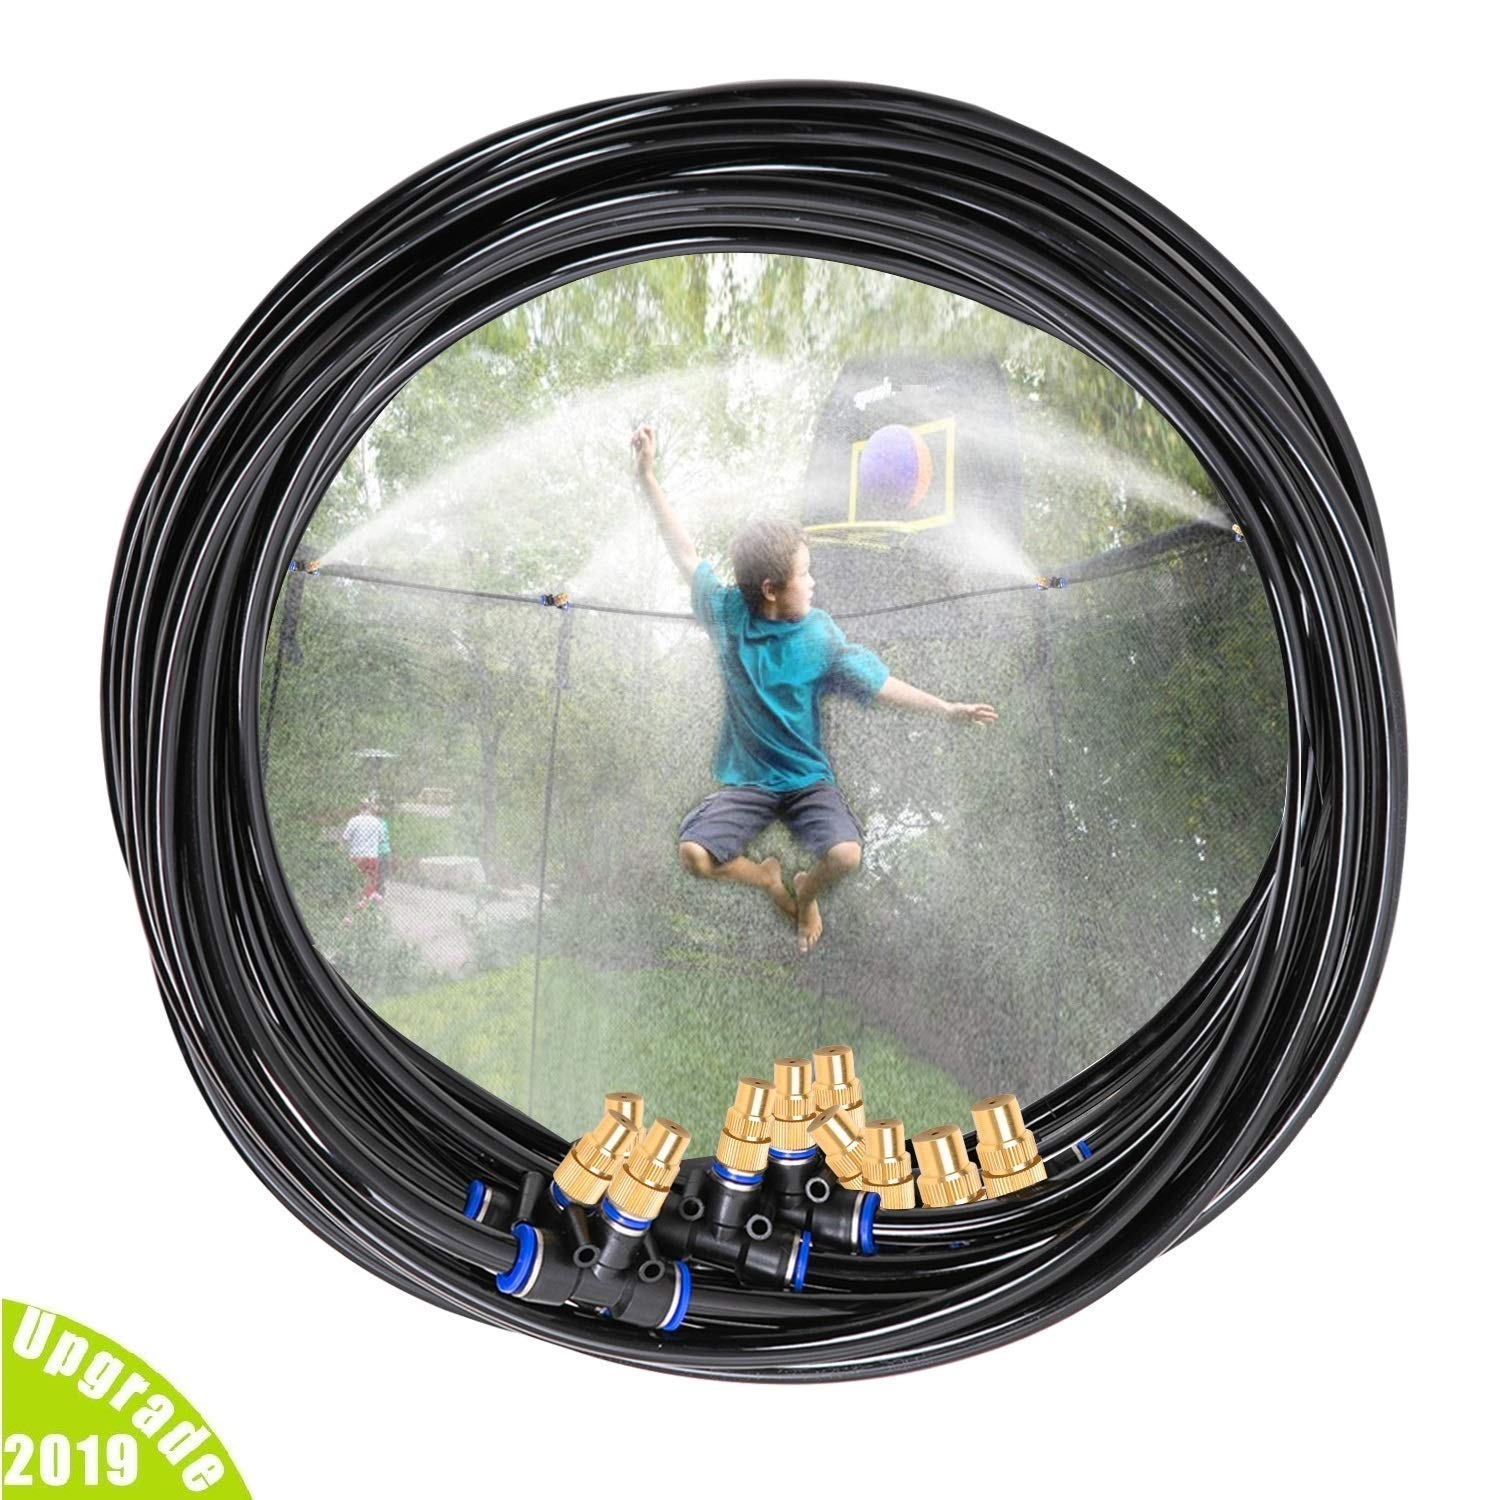 H&G lifestyles Outdoor Trampoline Water Play Sprinklers for Kids- Summer Outdoor Water Fun Game Toys Accessories - Great for Boys & Girls and Adults - Attached On Trampoline Safety Net Enclosure by H&G lifestyles